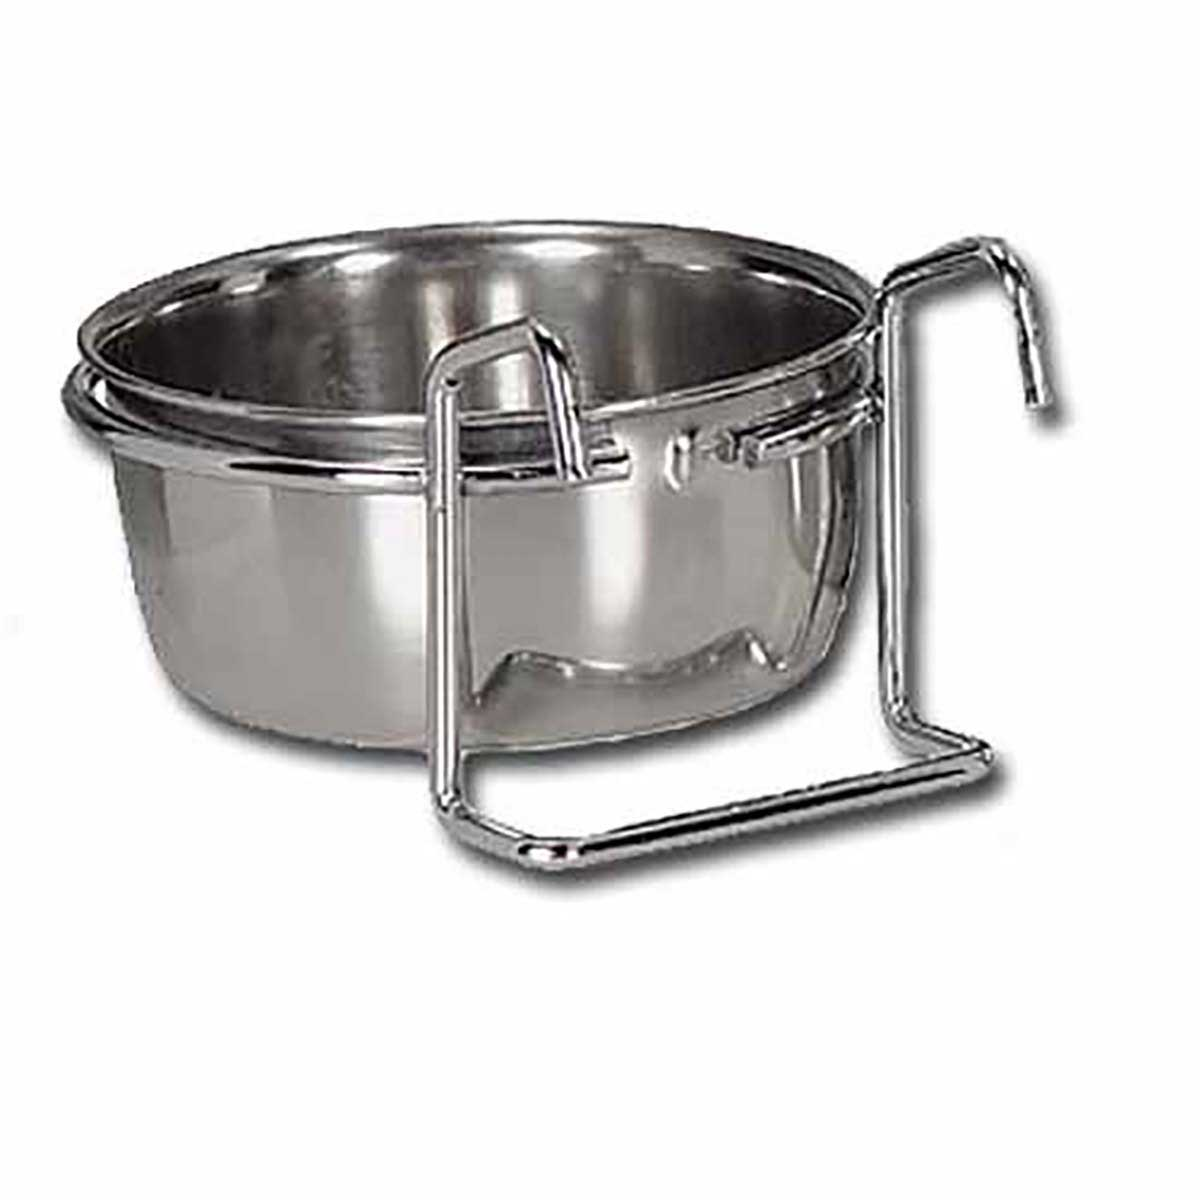 Indipets Stainless Steel Coop Cup for Cats or Dogs With Hanger 30 oz